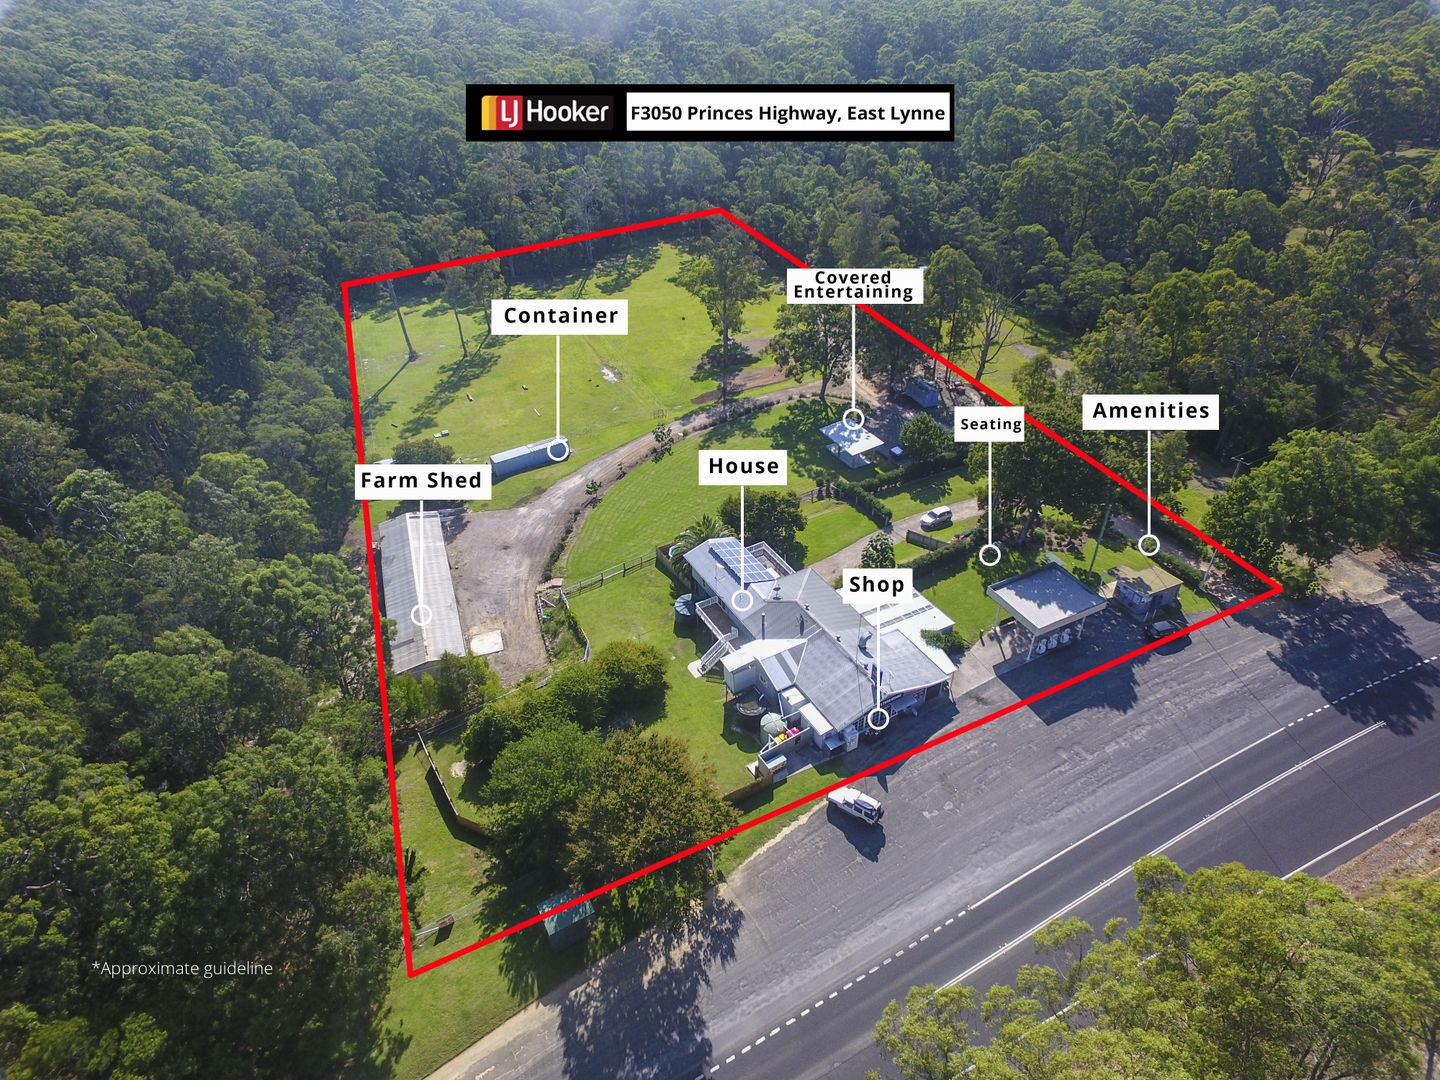 F3050 Princes Highway, East Lynne NSW 2536 - House for Sale - 5 00 acre